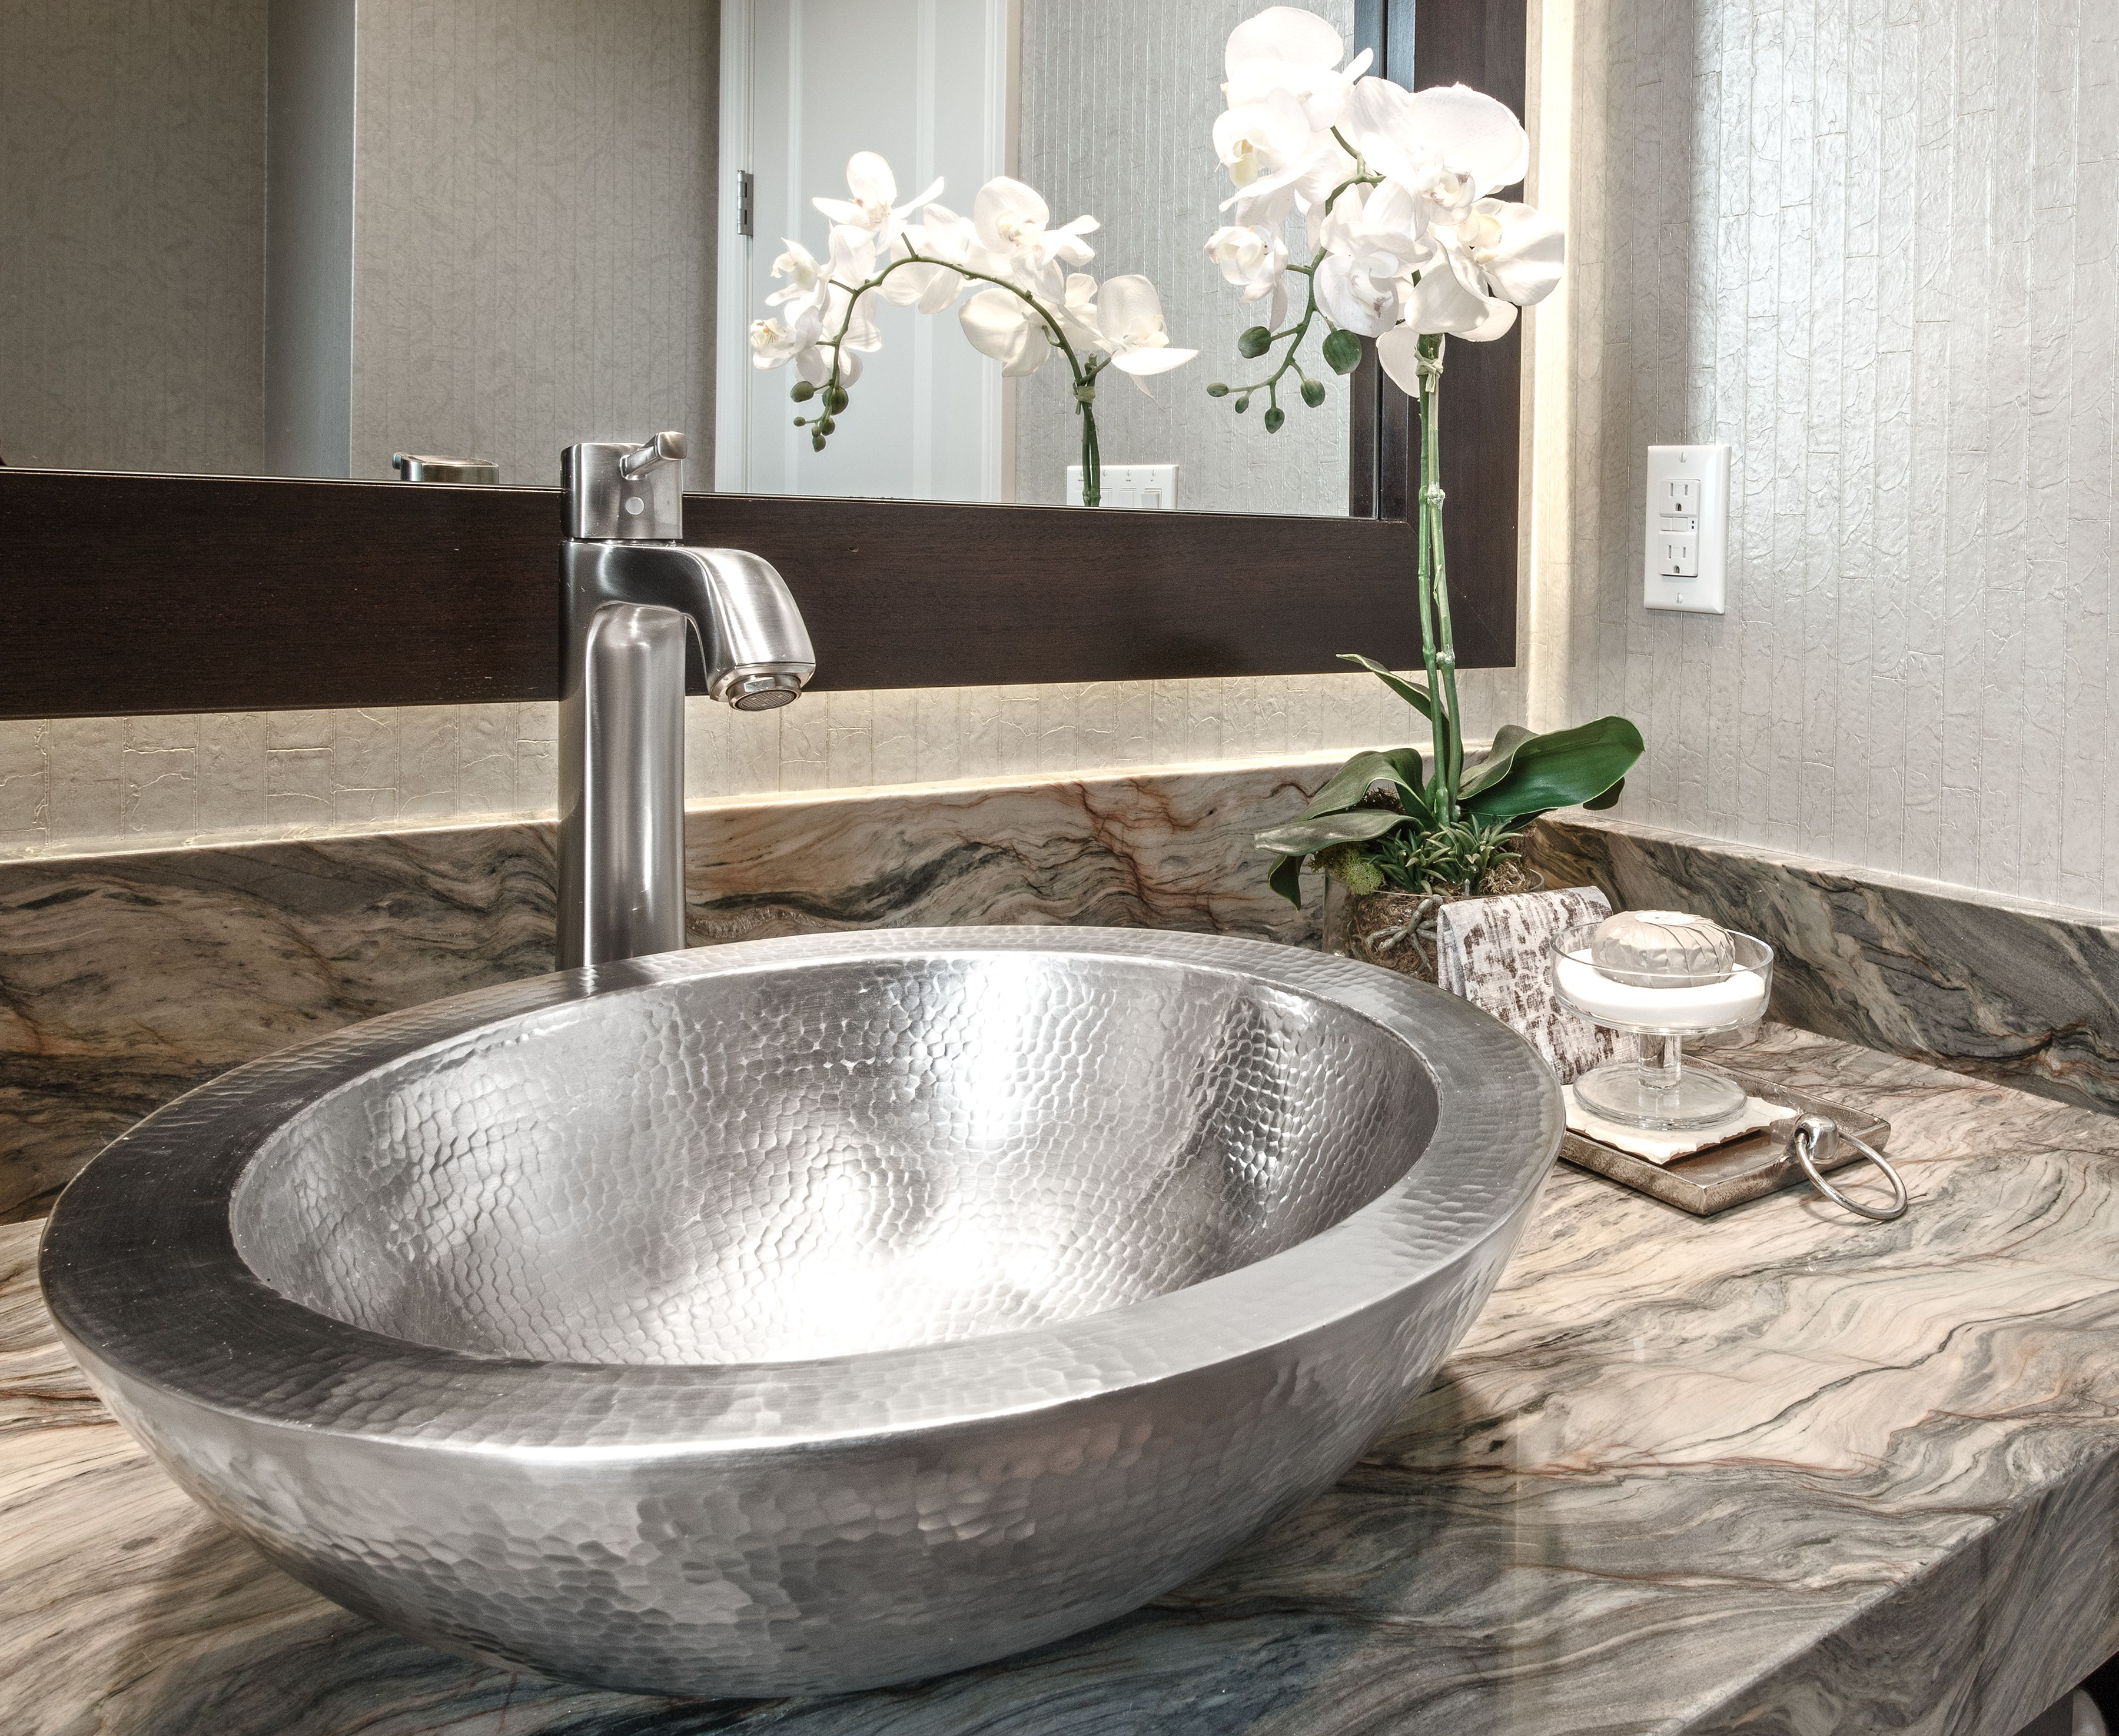 Metal Vessel Sink With Textured Design Featured In Our Custom